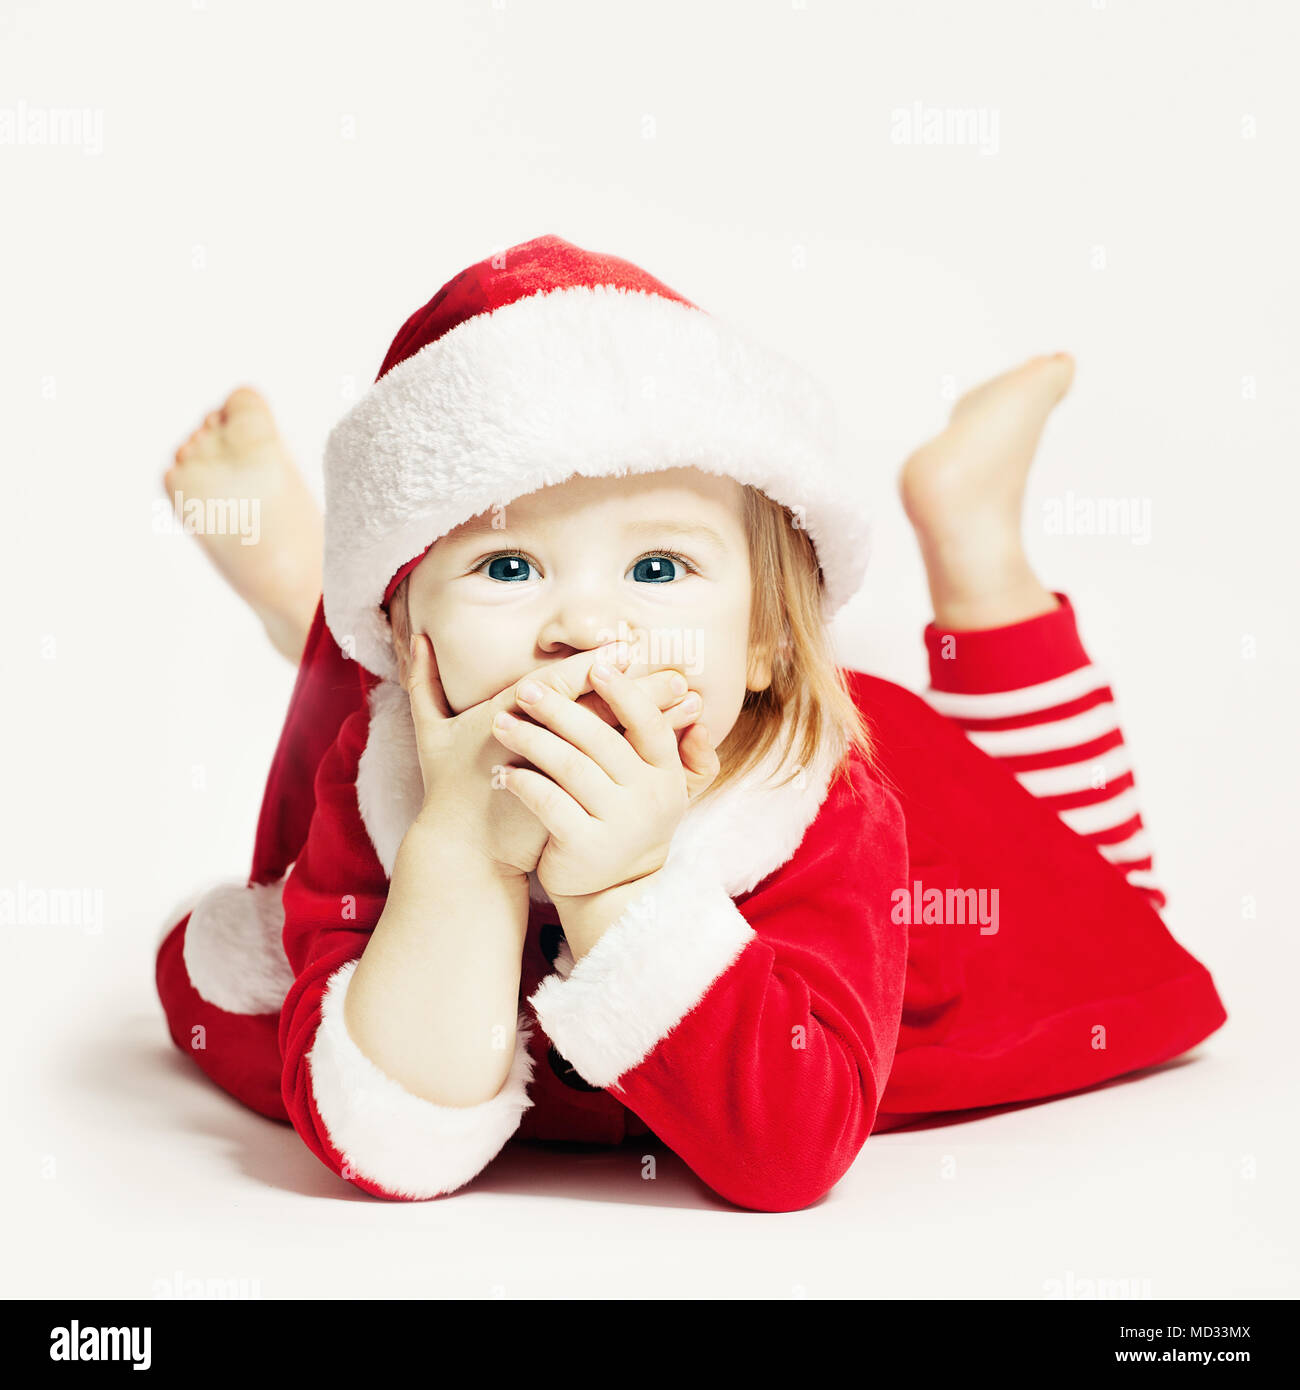 b0710fe62d5 Happy Baby in Santa Hat. Infant Child Laughing Stock Photo ...